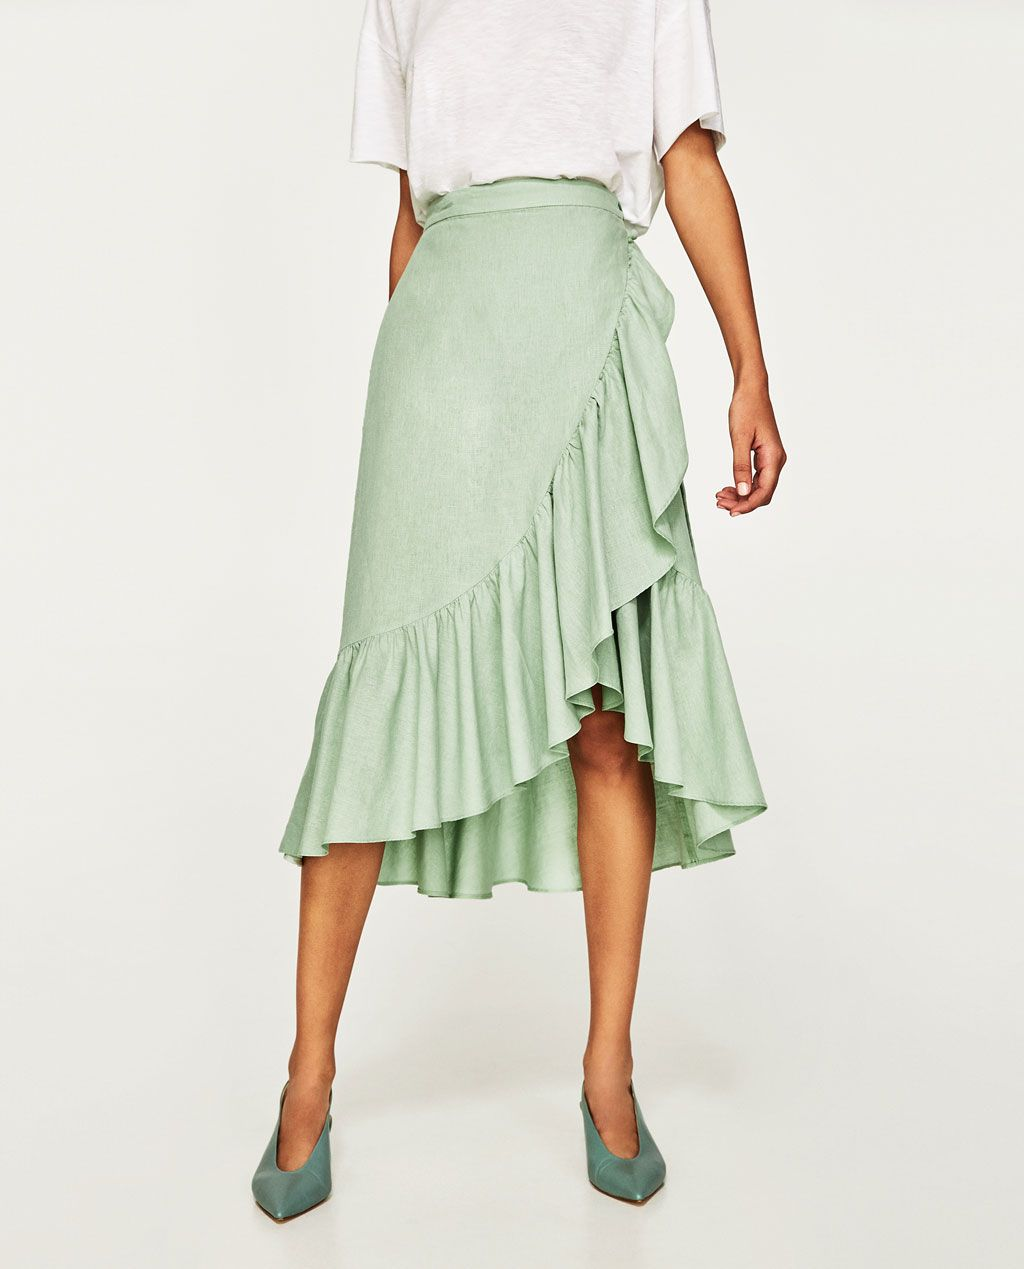 692875ed673 RUFFLED WRAP SKIRT-View All-SKIRTS-WOMAN | ZARA United States | $50 ...